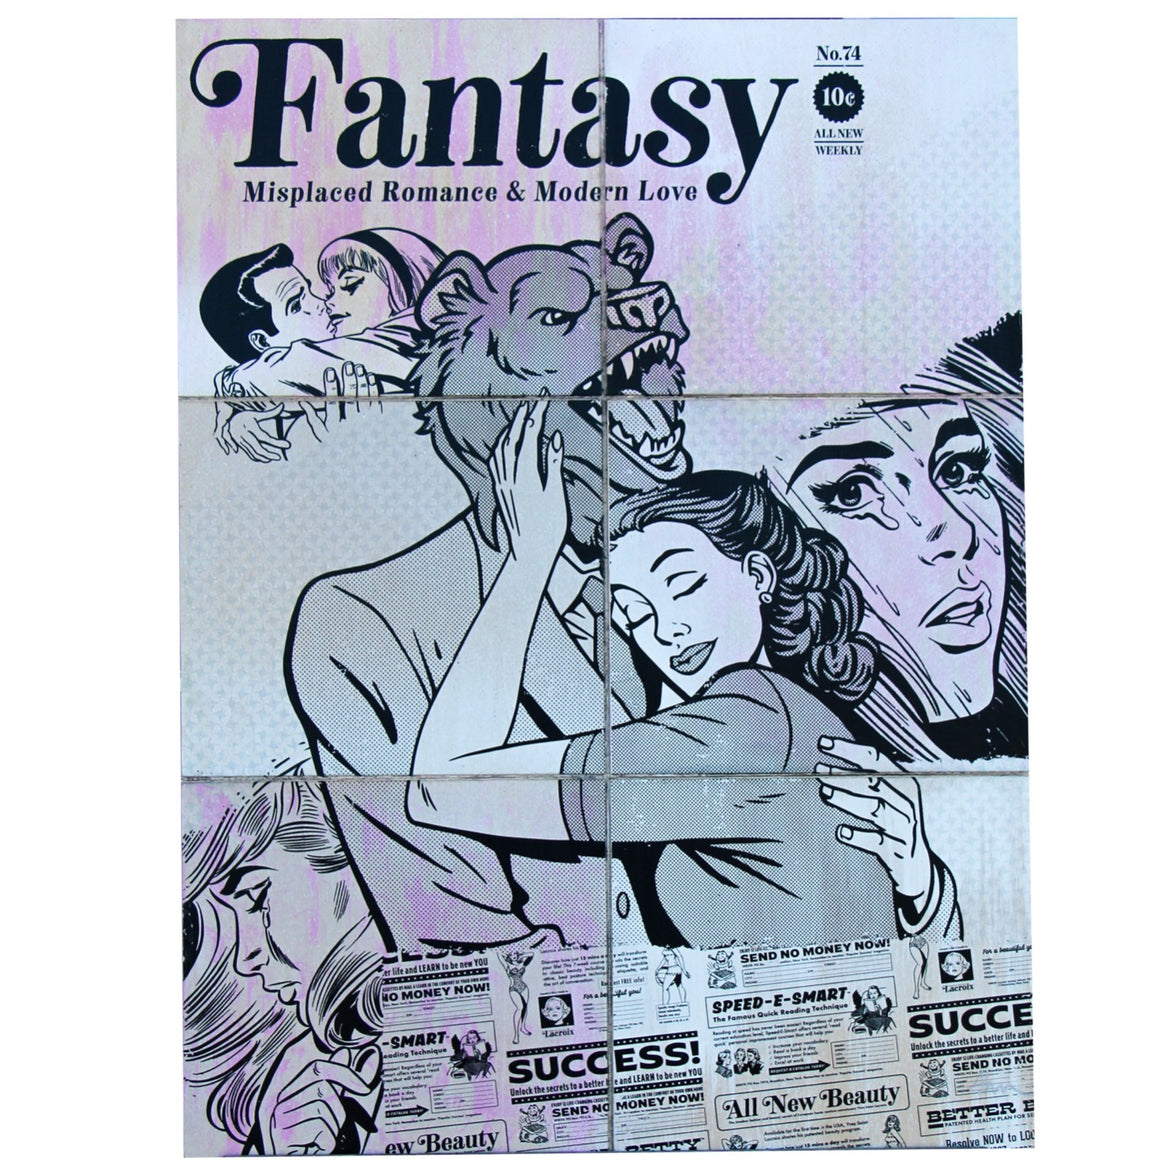 In Love With the Fantasy - Beast Syndicate - 18x24""